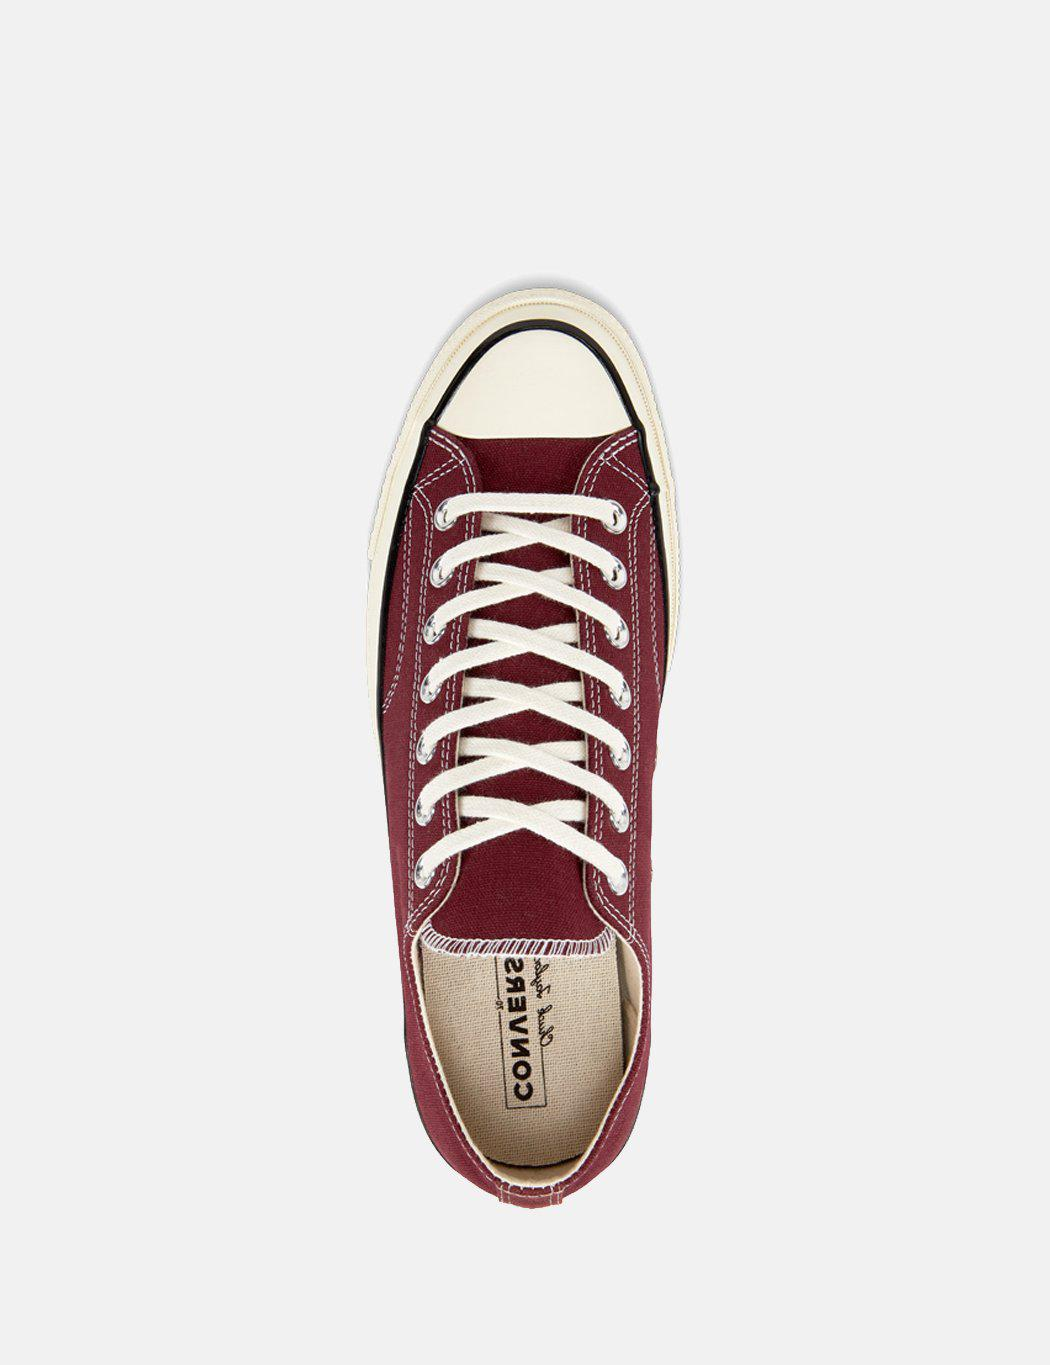 229d84989648 Converse - Red 70 s Chuck Low 162059c (canvas) for Men - Lyst. View  fullscreen